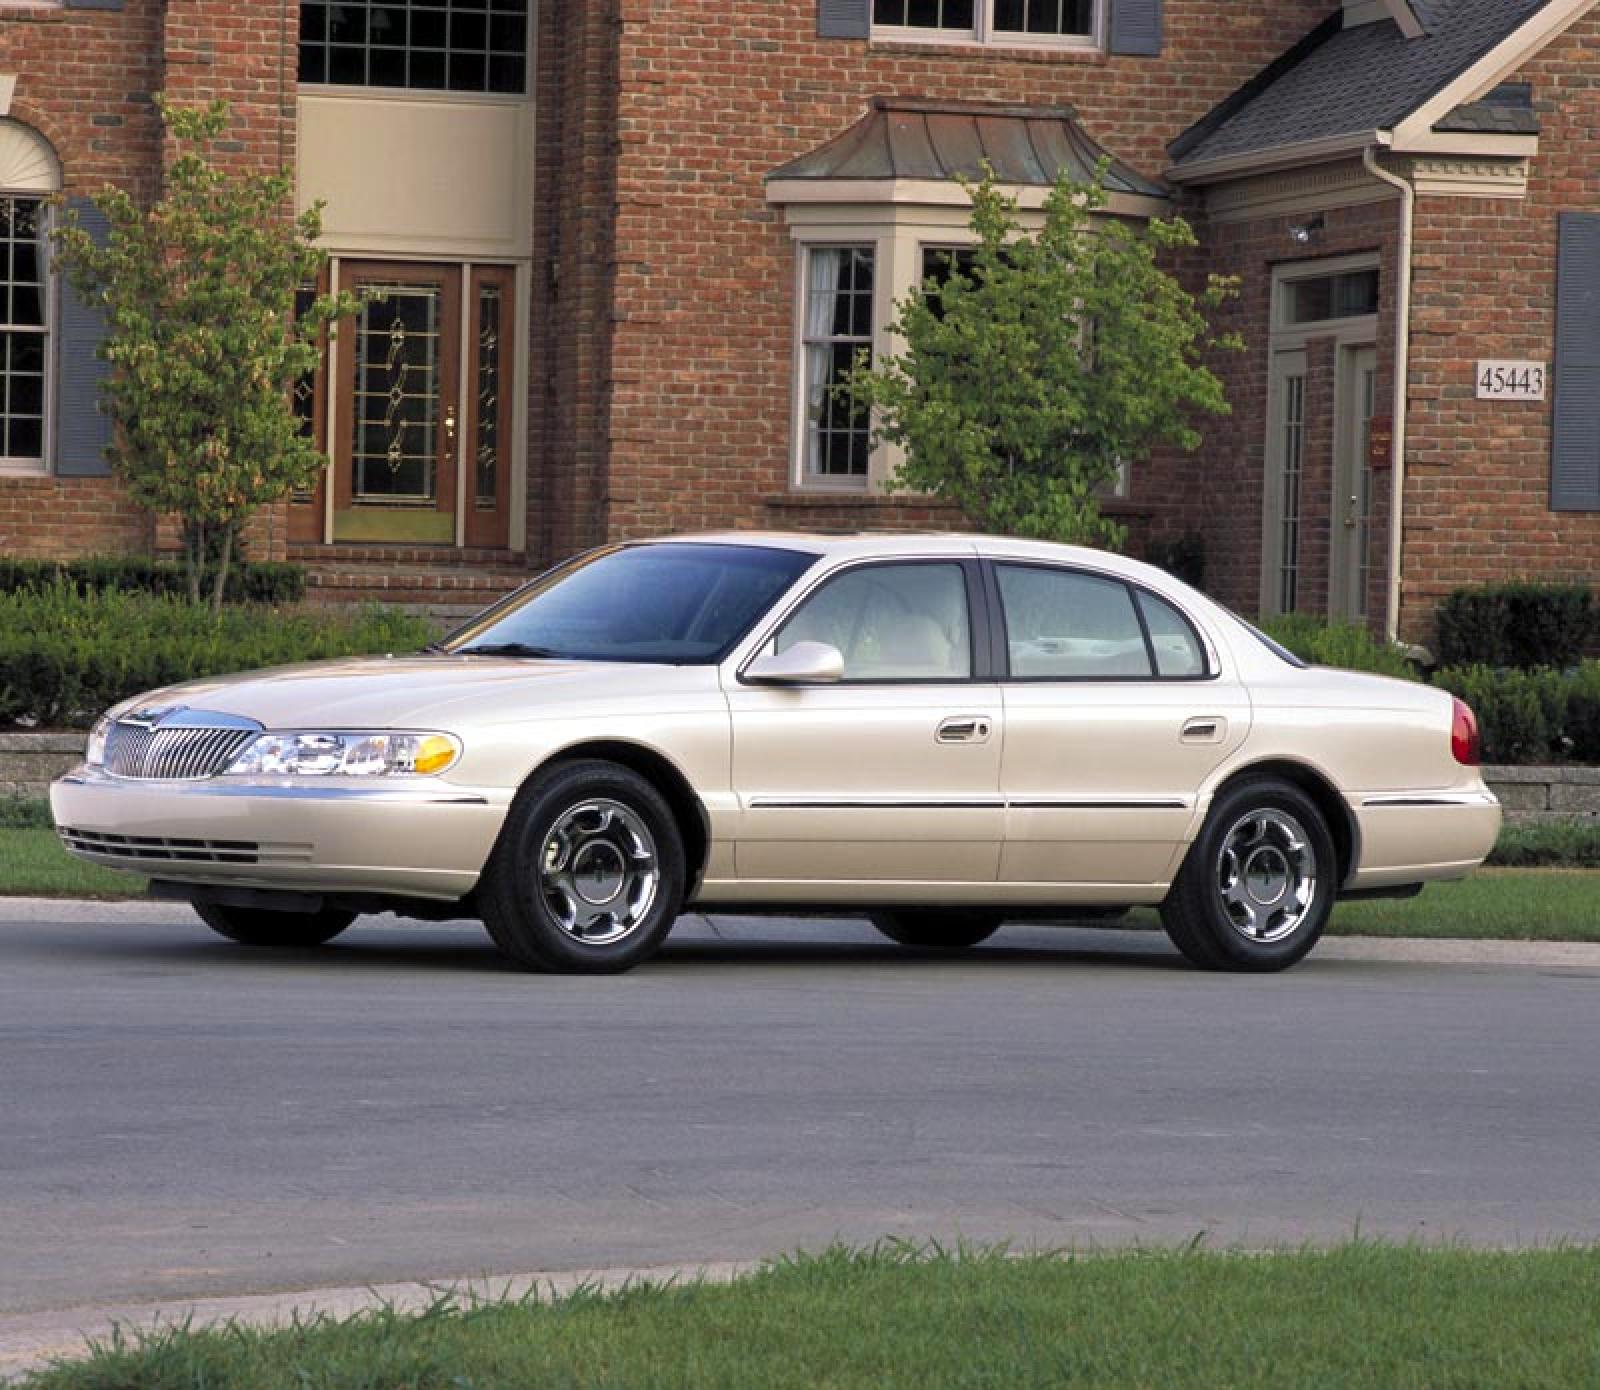 1998 Lincoln Continental Information And Photos Zombiedrive Town Car Lowrider 800 1024 1280 1600 Origin